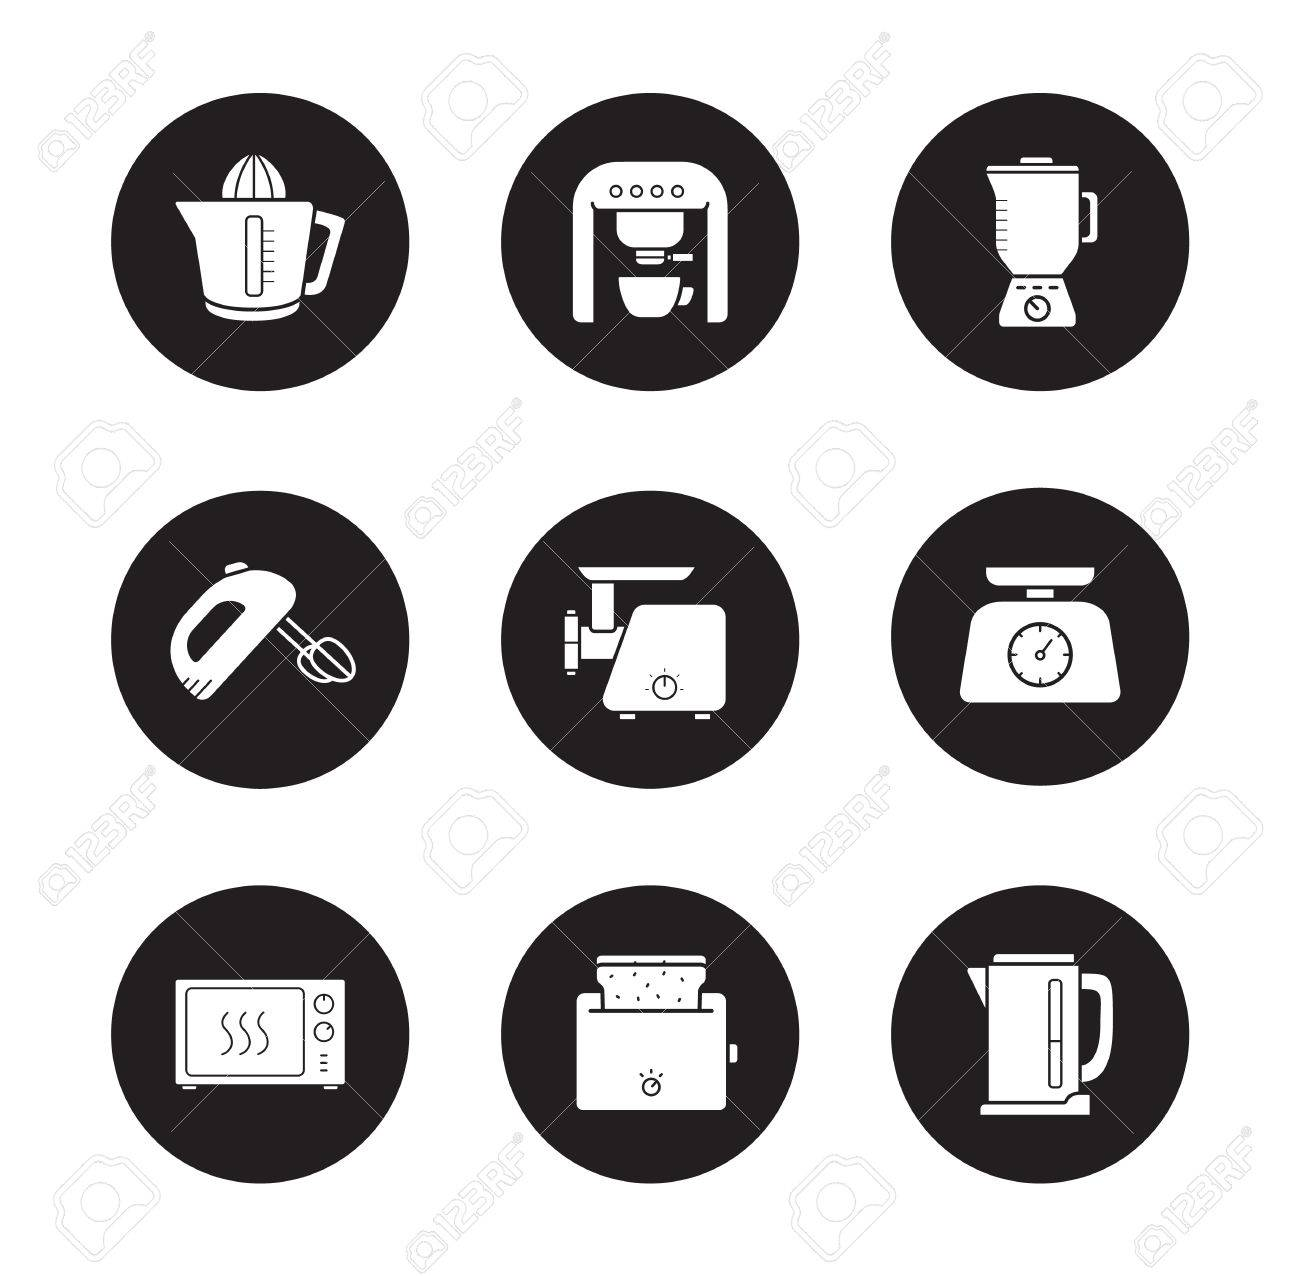 Electrical Wiring Symbols Modern Home Automotive Diagram Residential Types Kitchen Electronics Icons Set Devices Rh 123rf Com Of Basic